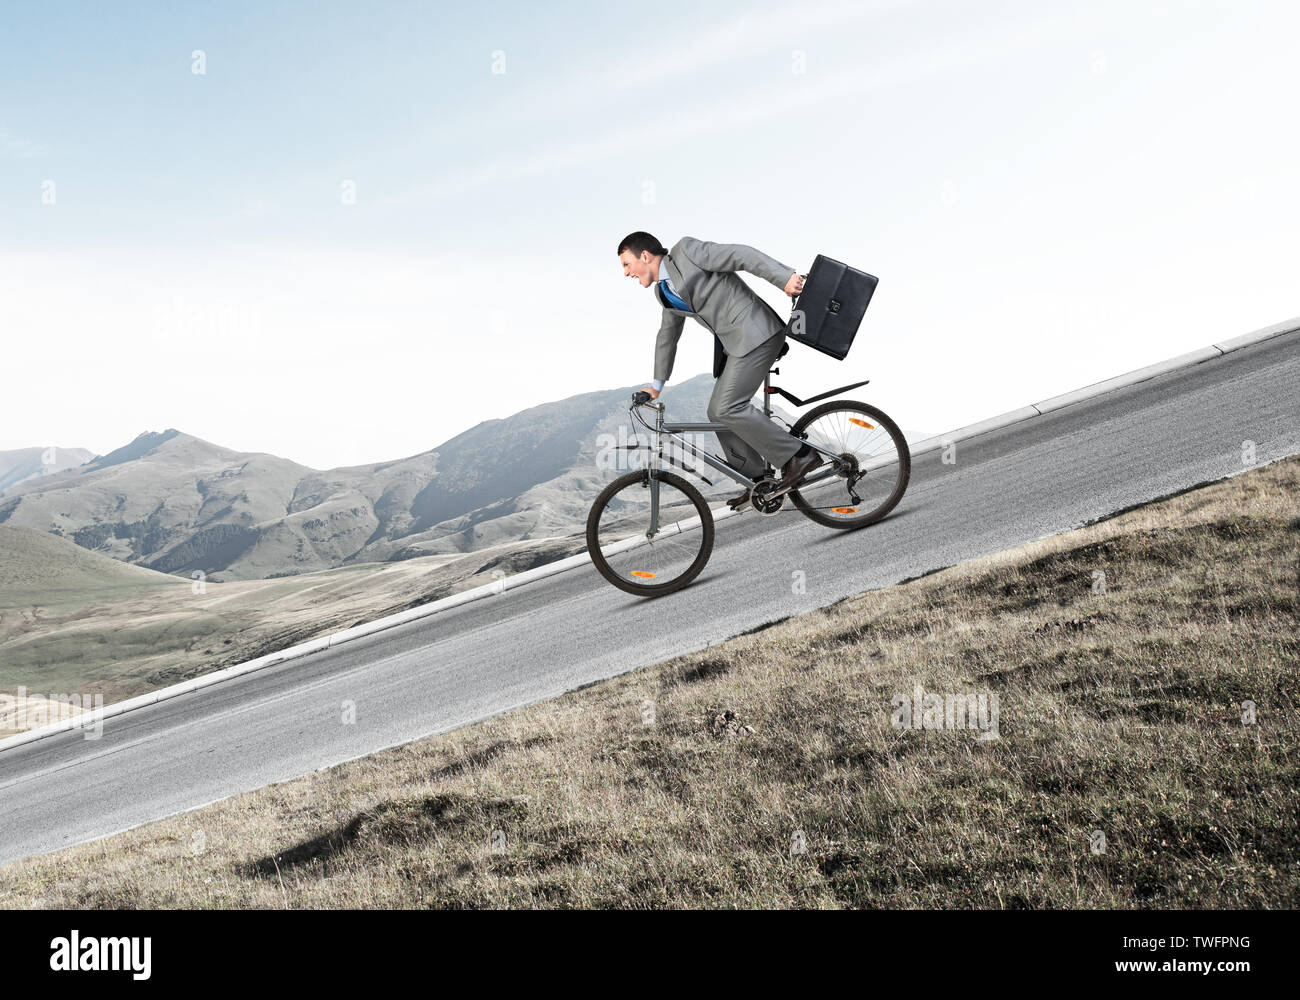 Young Man On Bicycle Fast Riding Downhill At Sunny Day